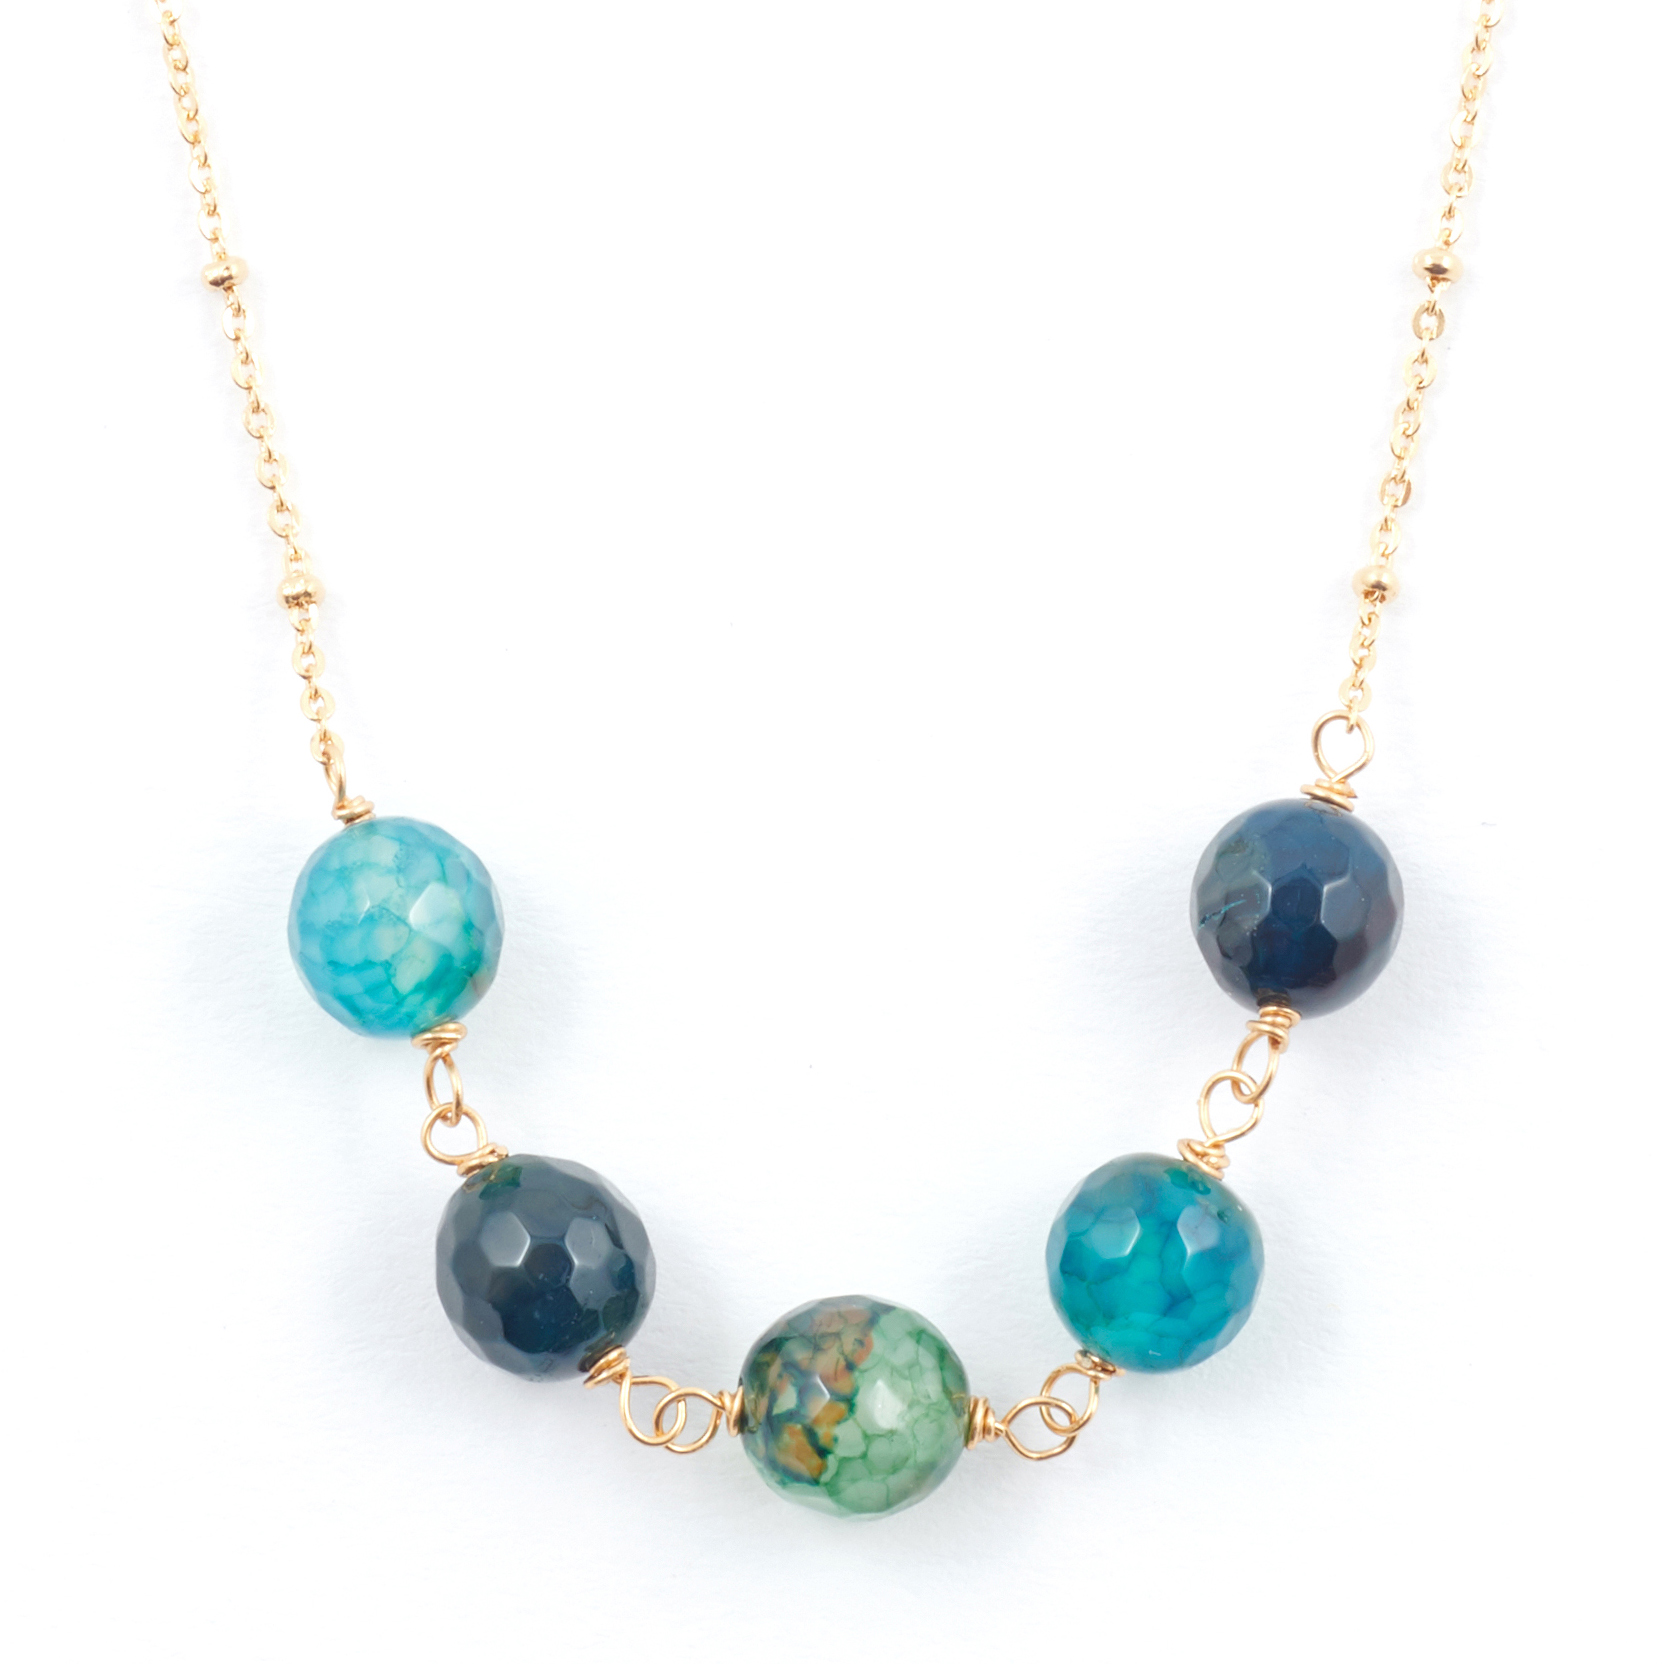 Teal blue agate necklace by Mirabelle